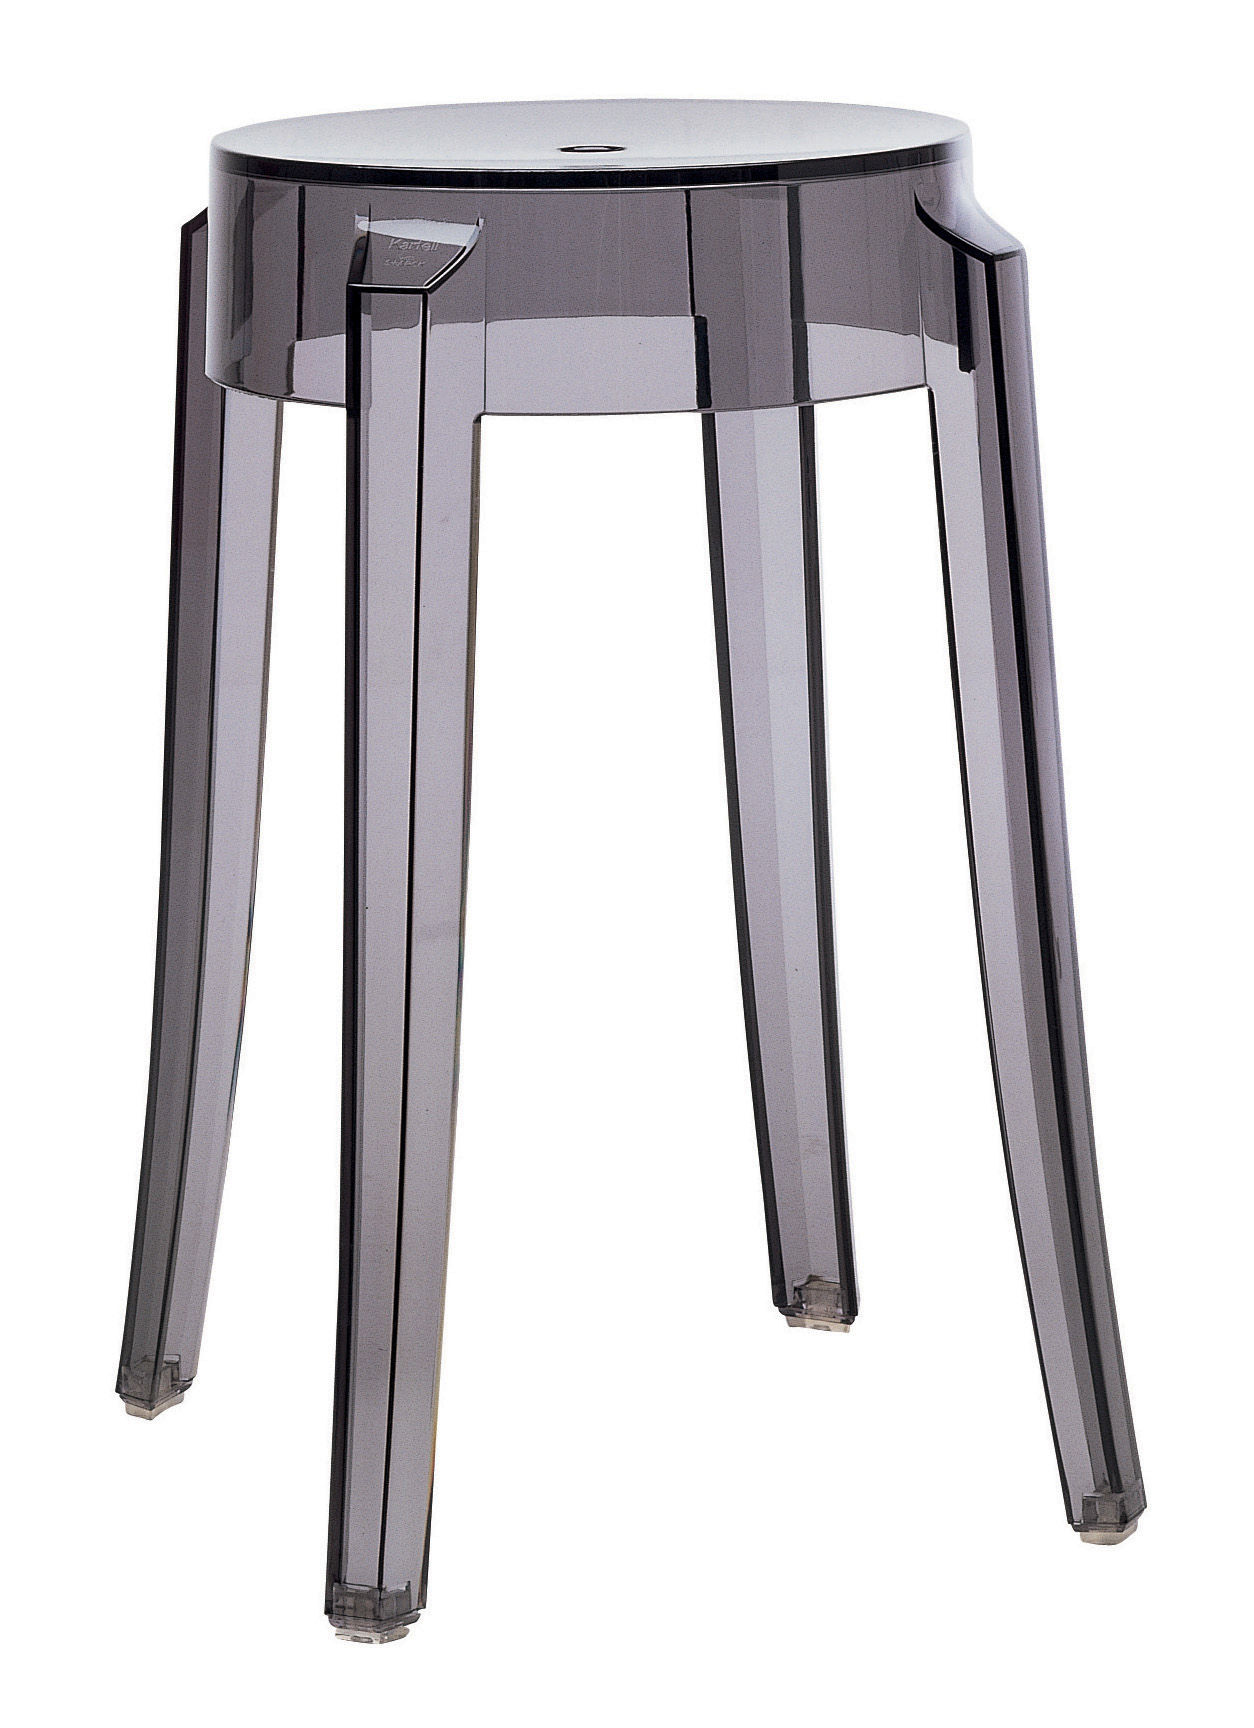 Tabouret empilable charles ghost h 46 cm plastique fum kartell - Tabouret plastique empilable ...